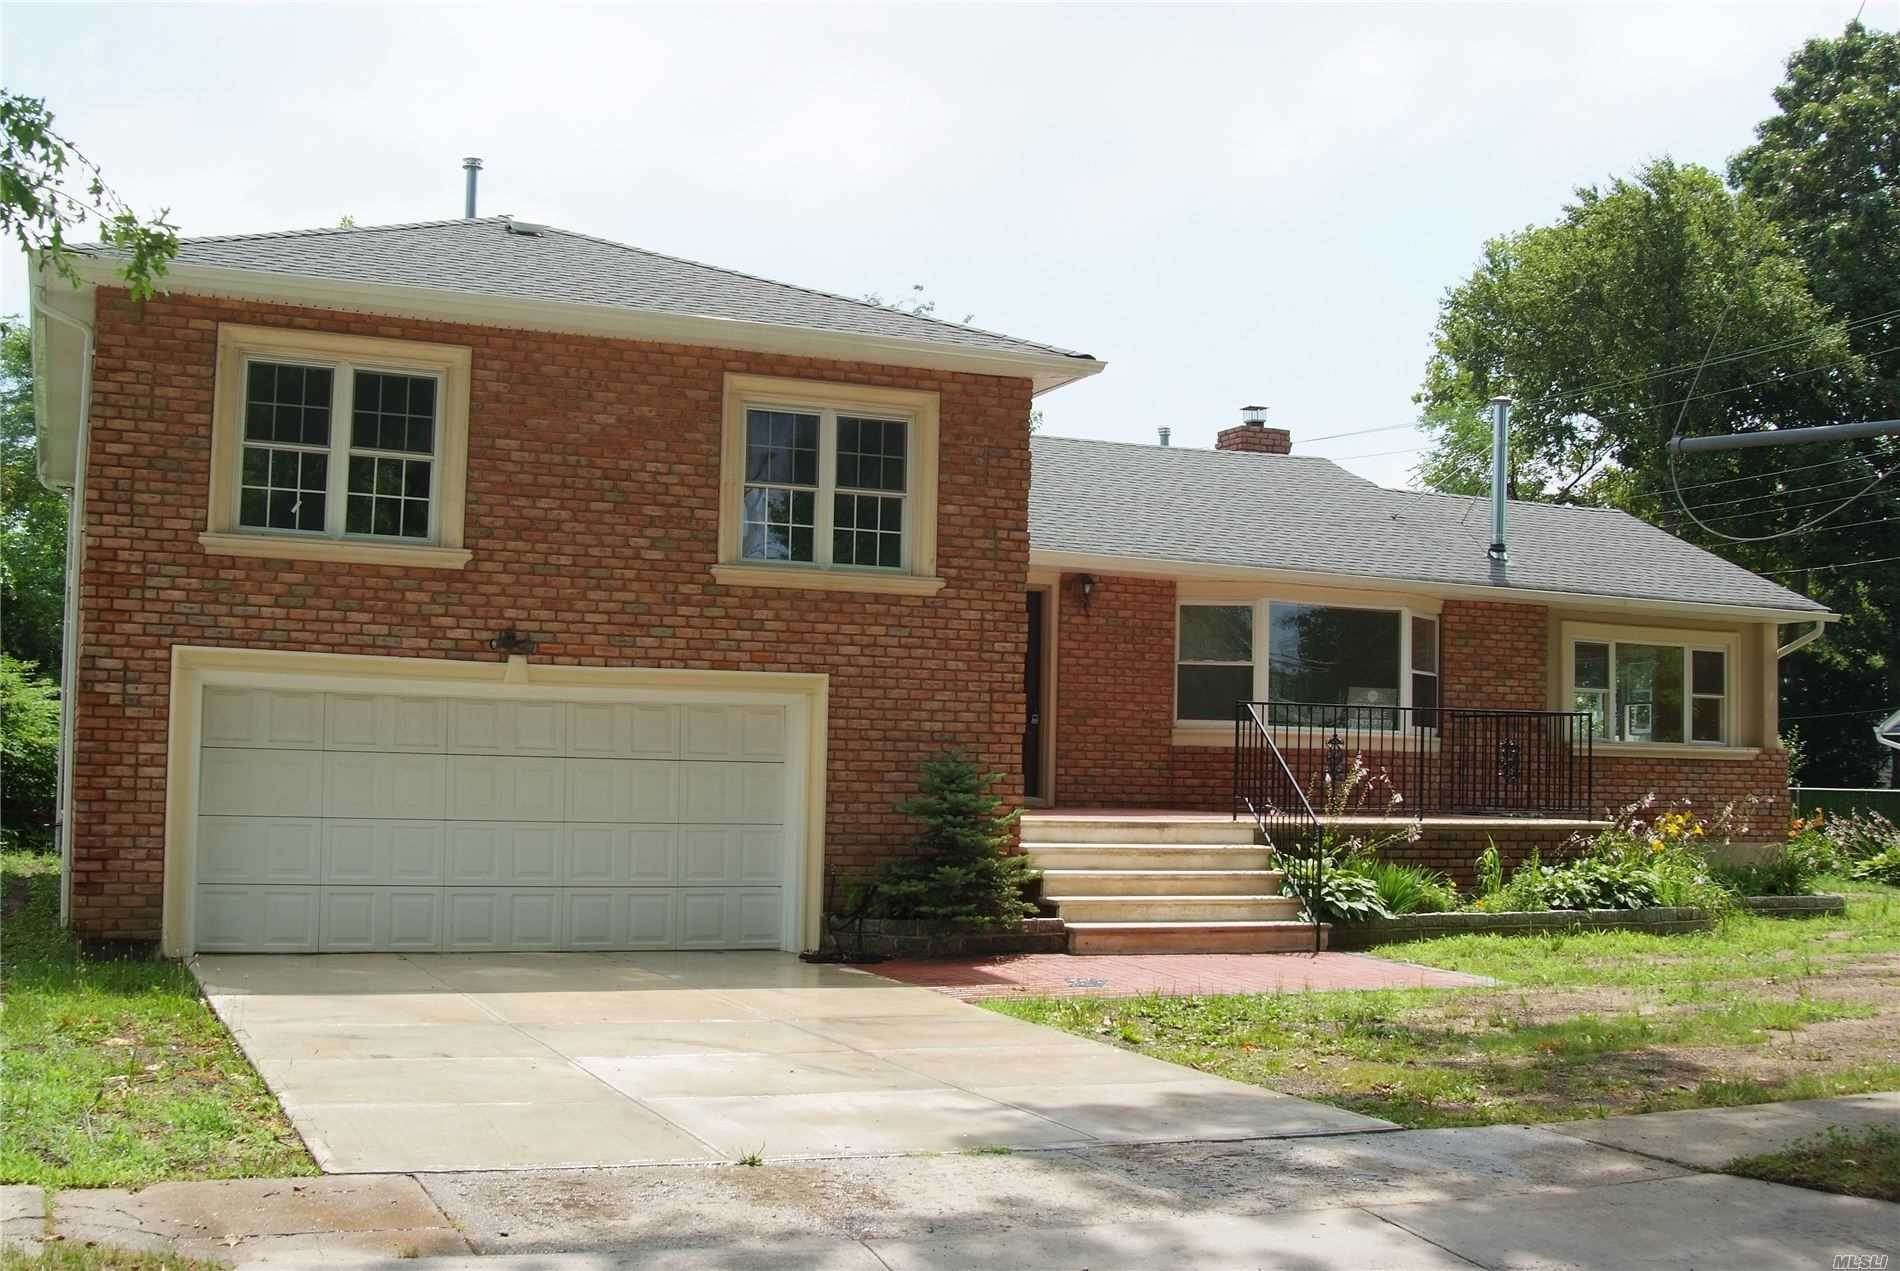 Residential for Sale at 627 Dogwood Avenue West Hempstead, New York 11552 United States